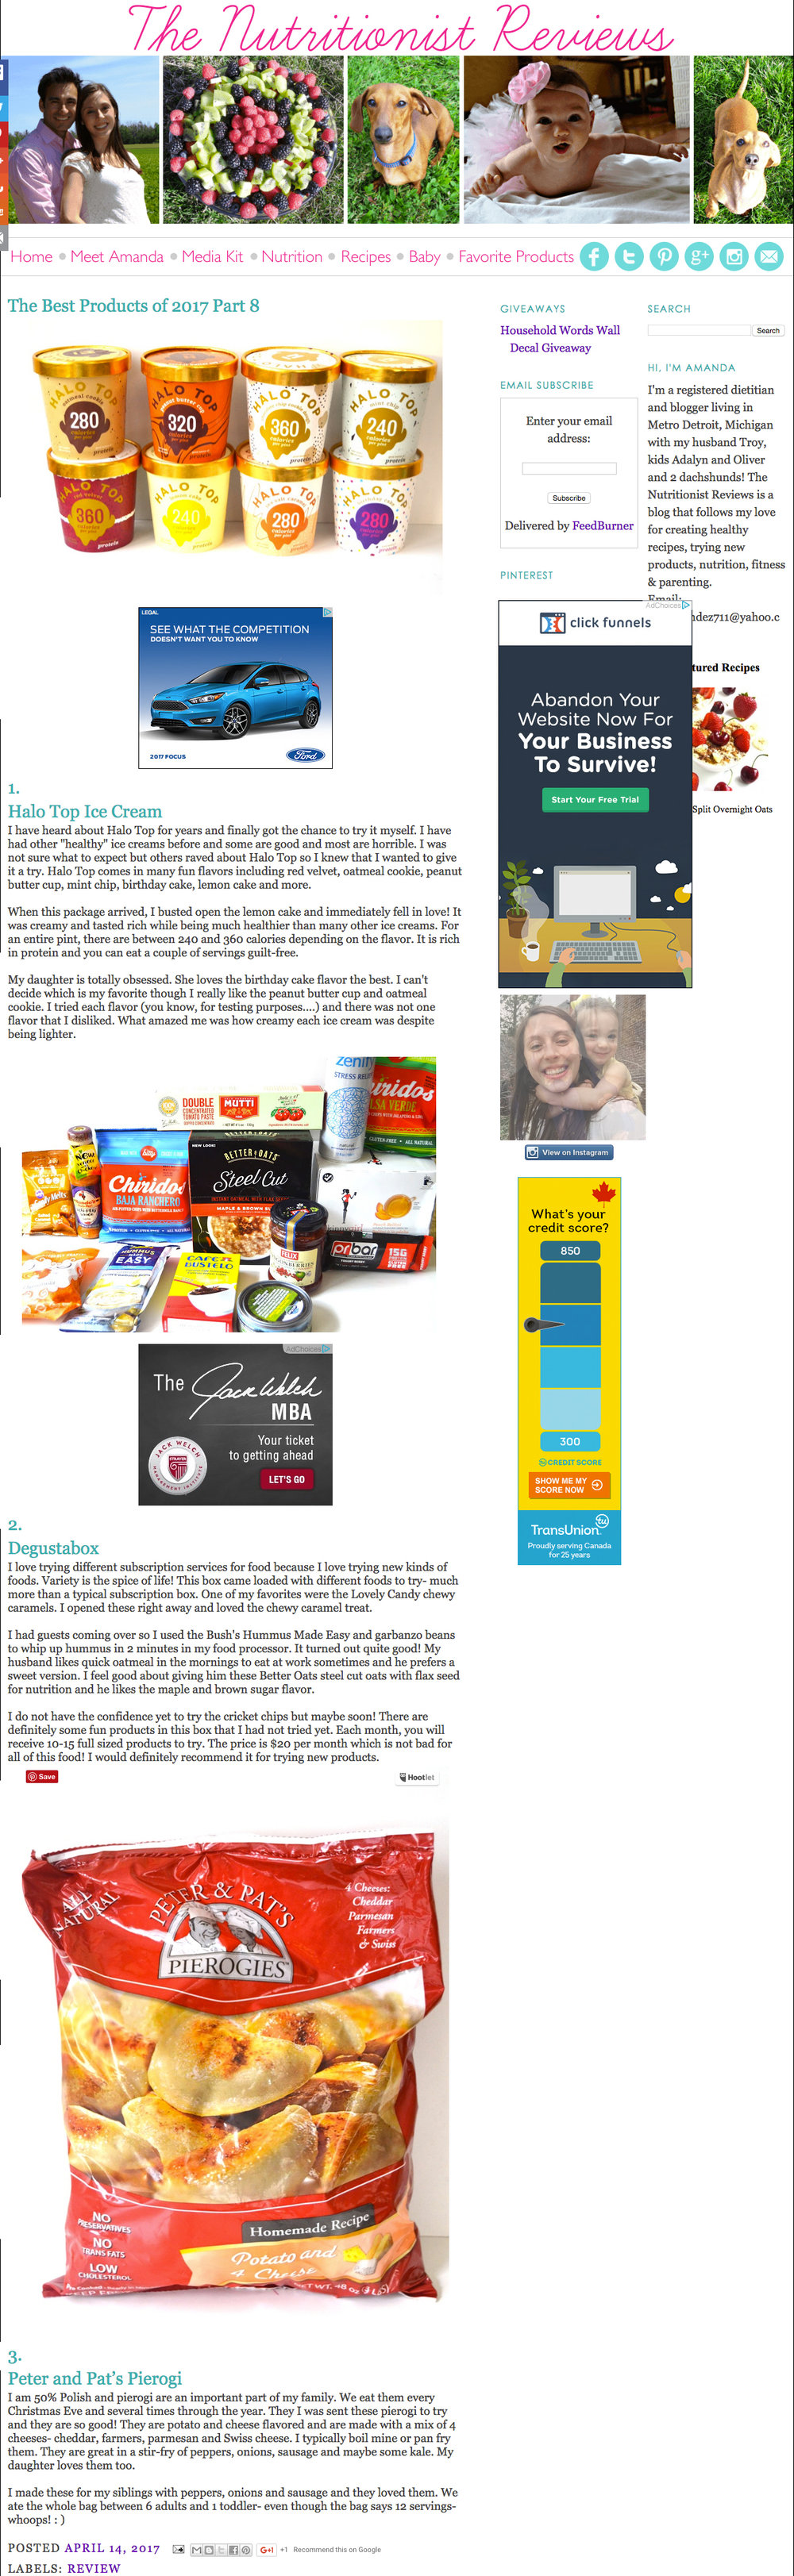 Peter & Pat's Pierogies featured on The Nutritionist Reviews